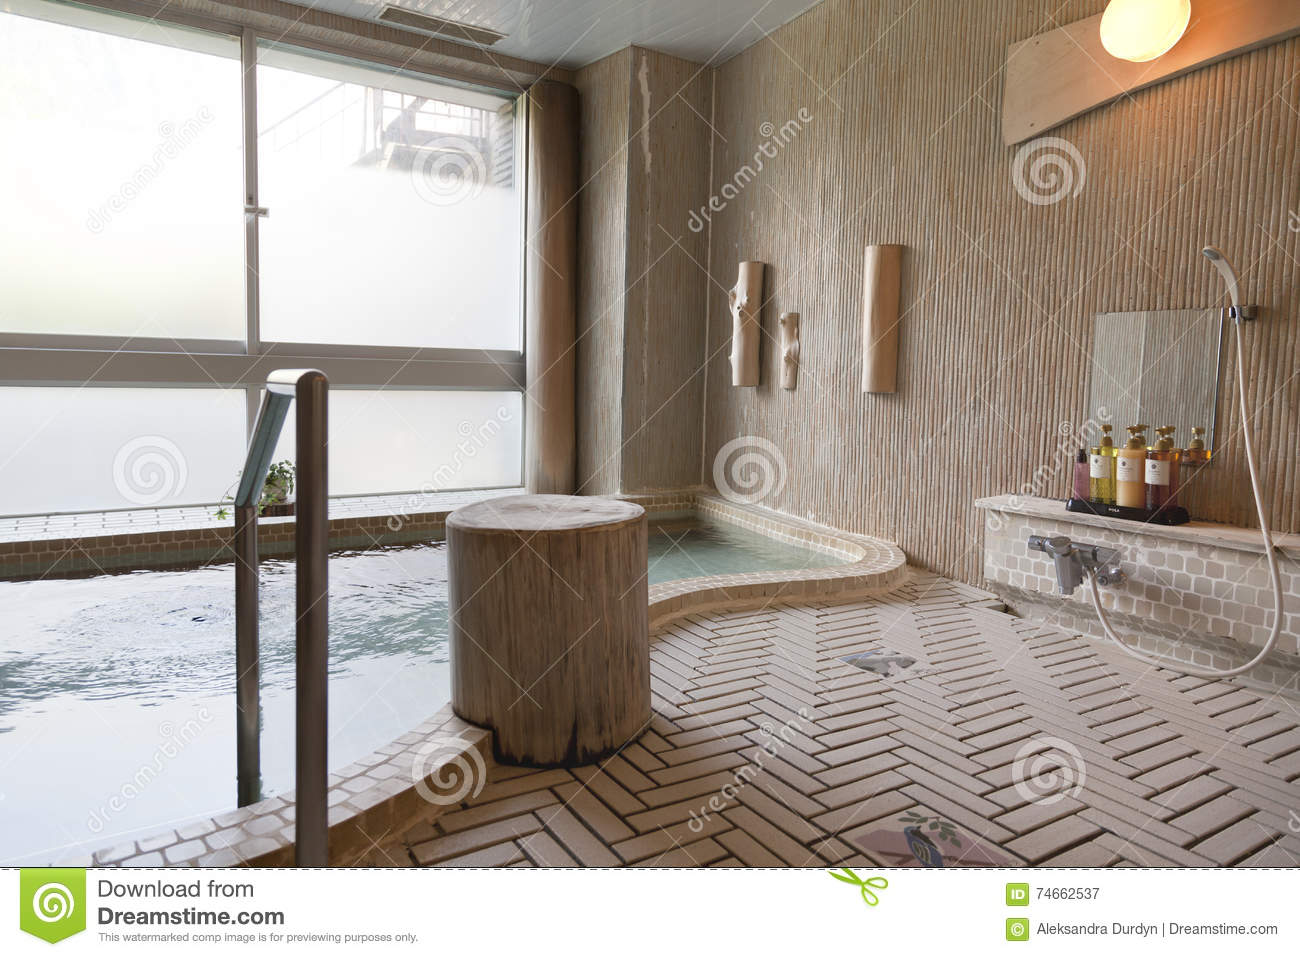 Bagno Giapponese Benessere : Bagno giapponese